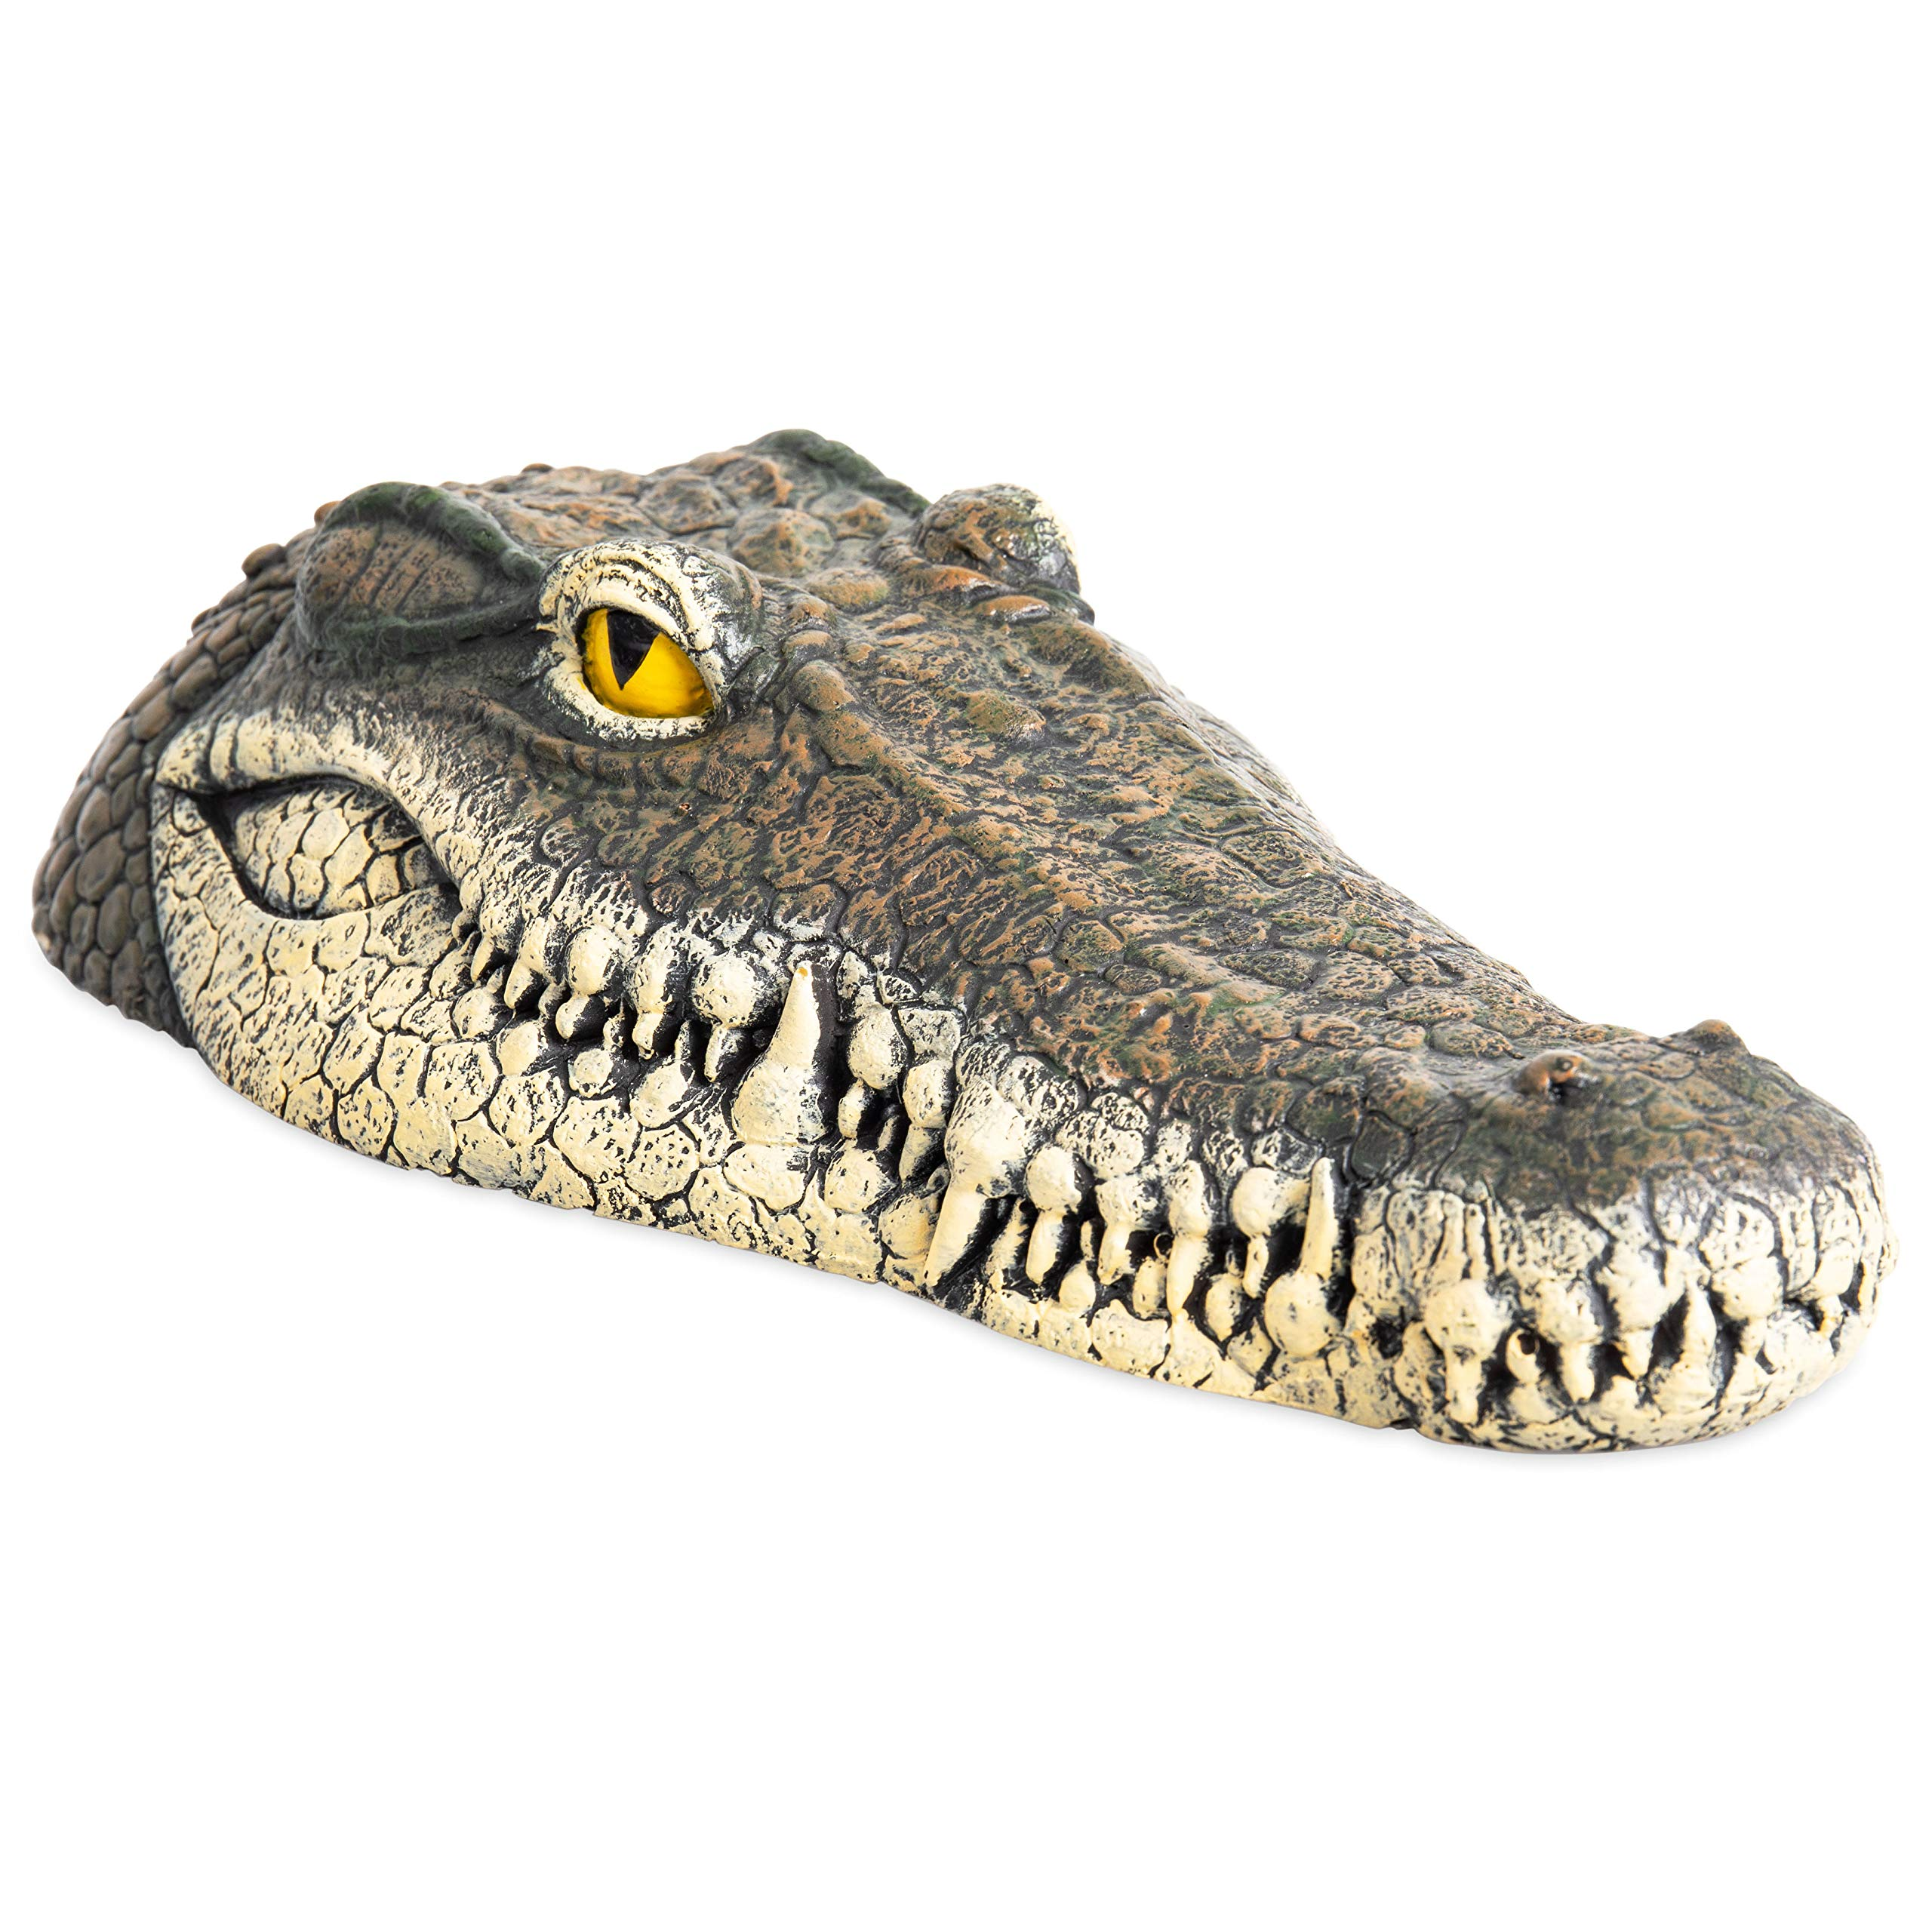 Homarden Floating Crocodile Head Water Decoy (13 x 6 x 3 Inches) - Garden or Pond Art Decor for Goose, Predator, Heron, Duck Control